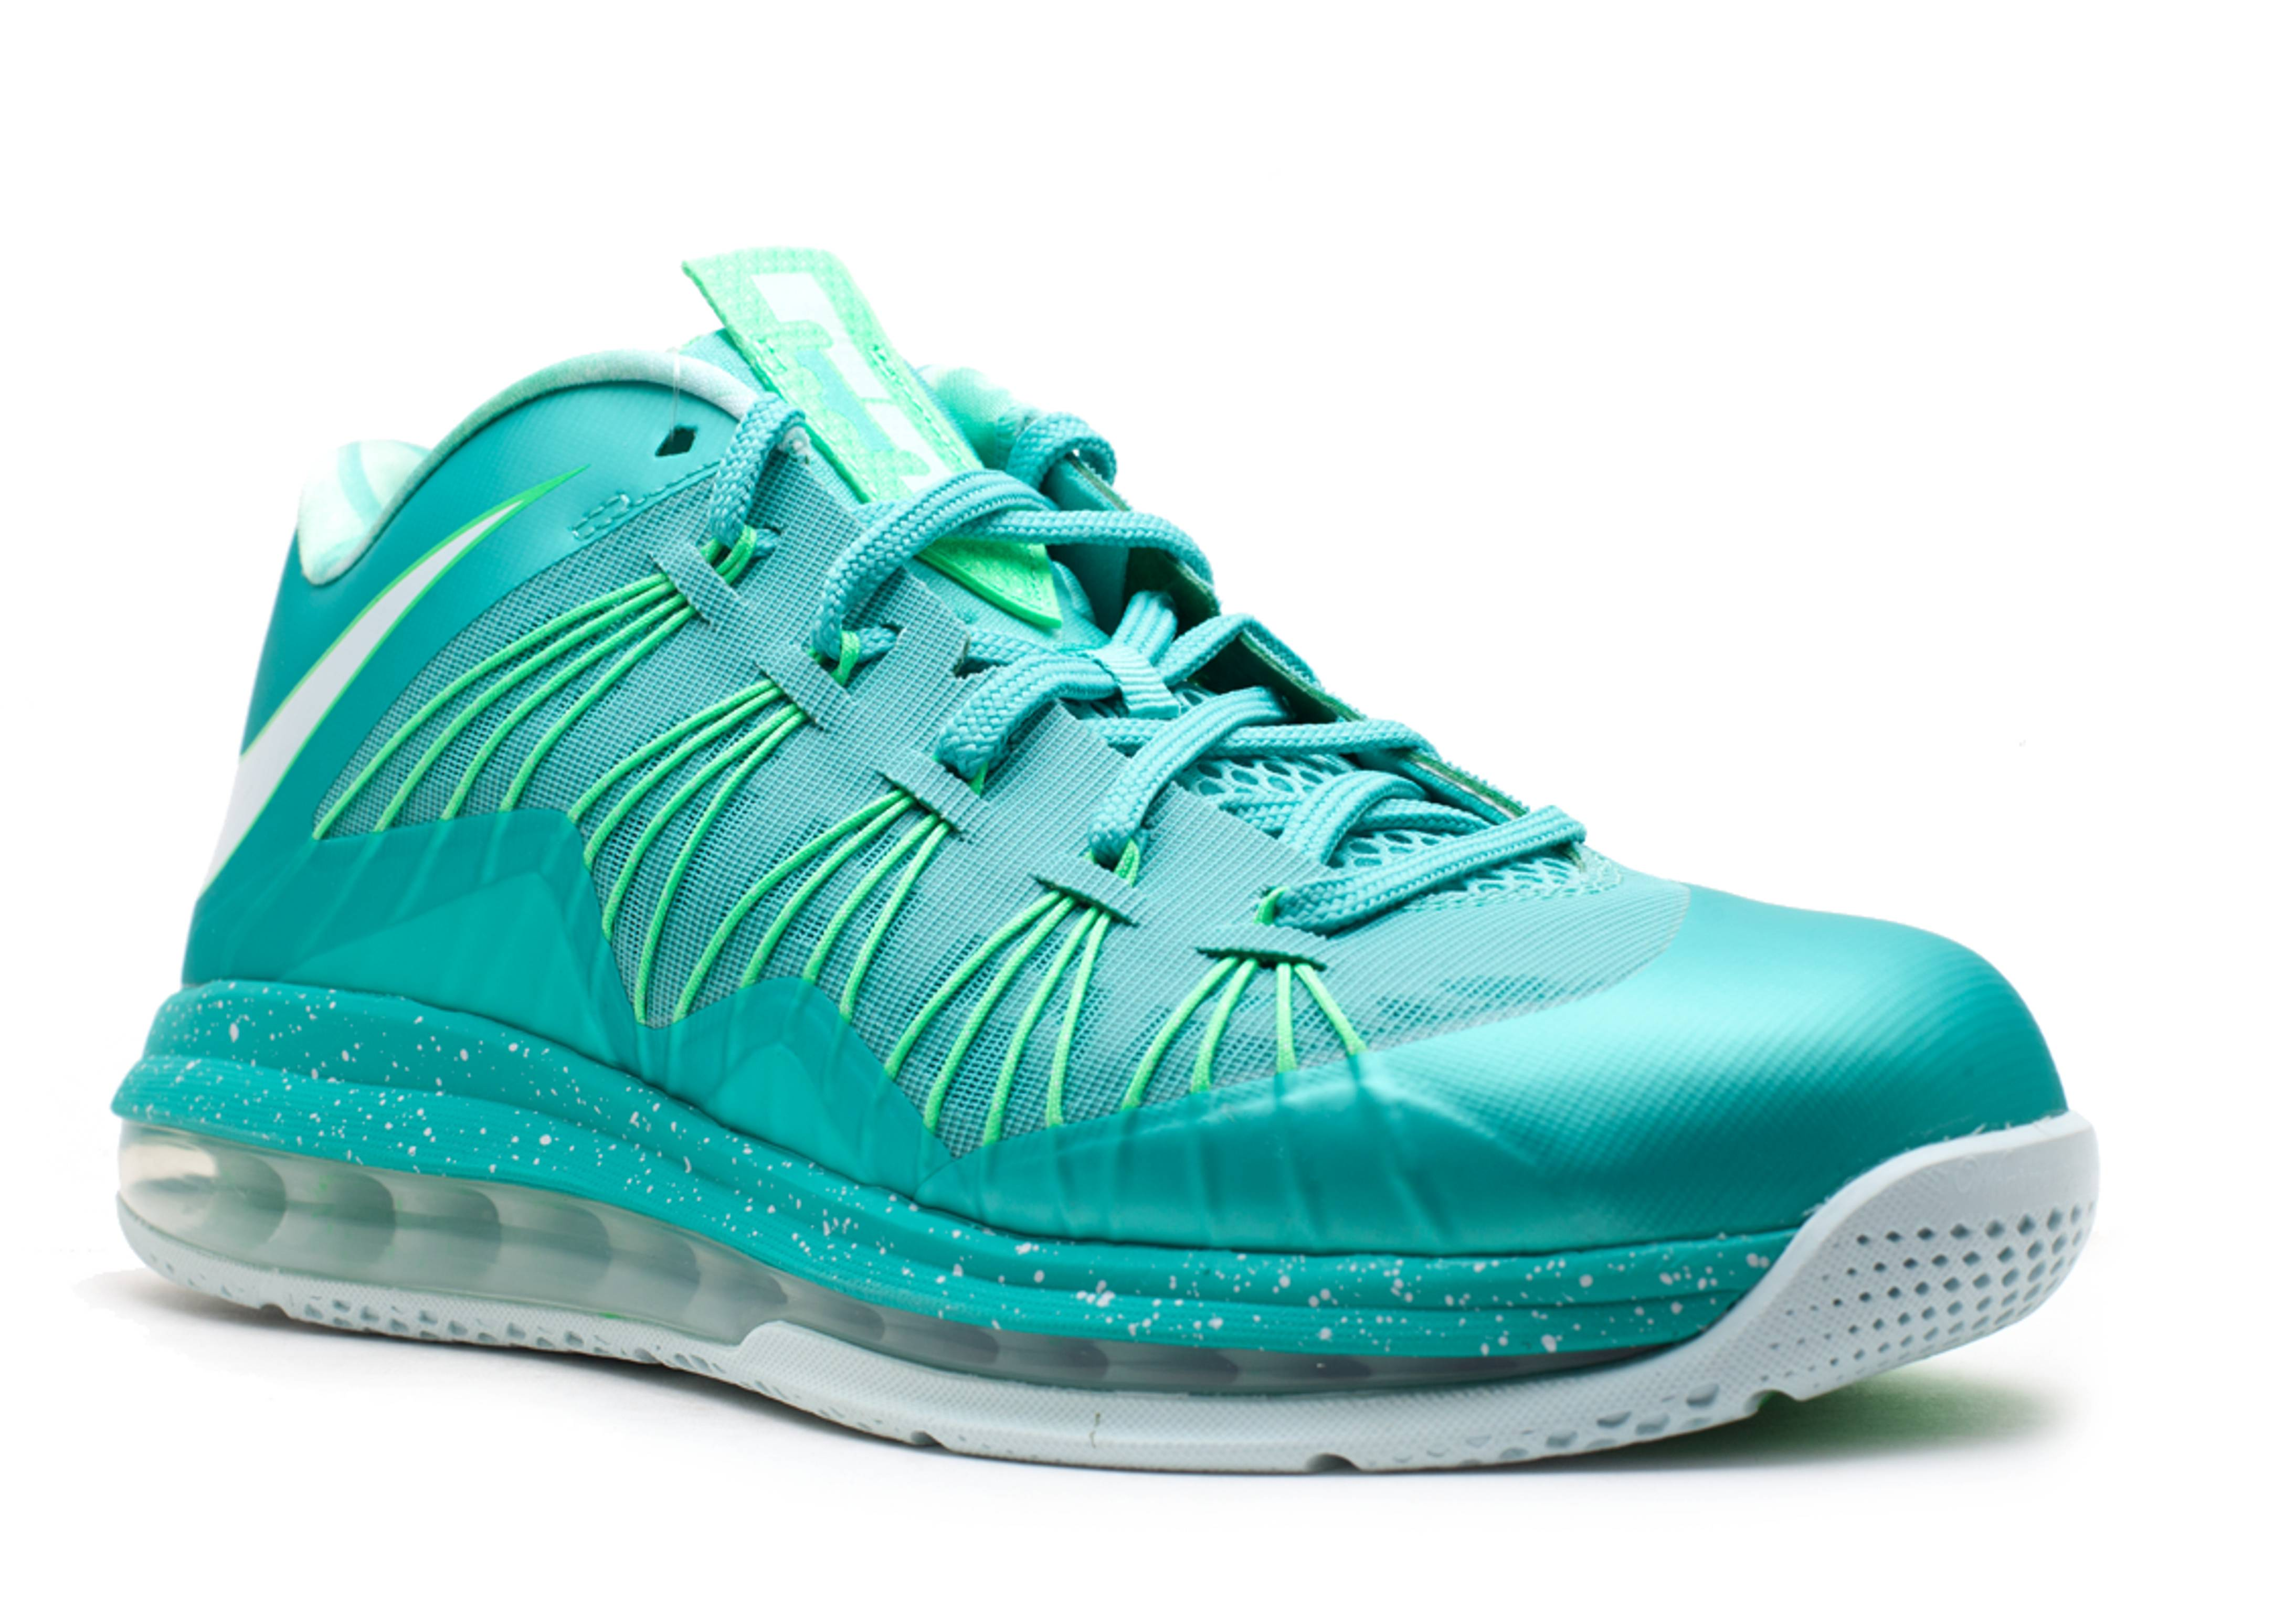 release date 293de 93557 buty nike air max lebron 9 low easter